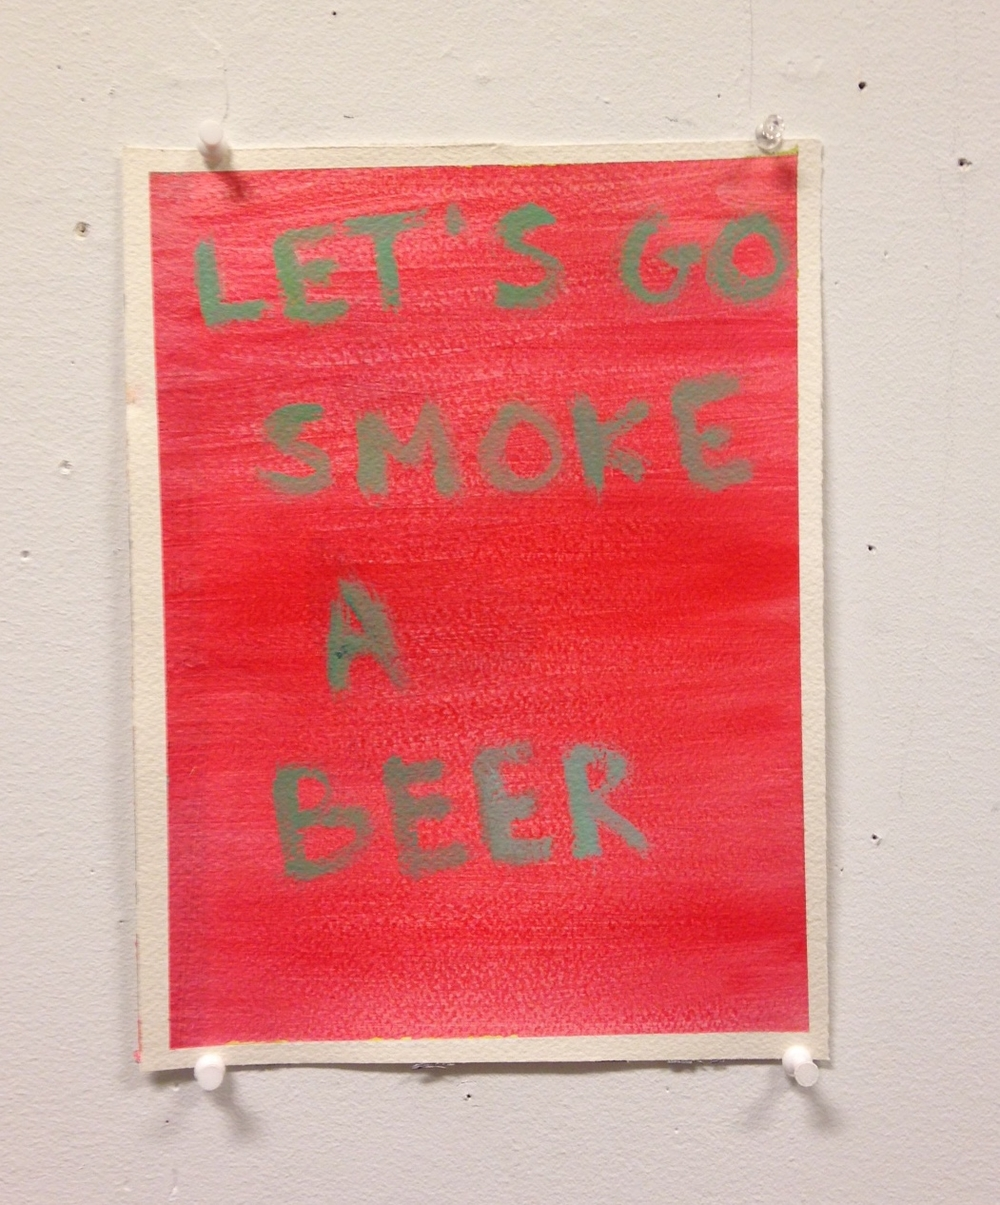 Let's Go Smoke A Beer